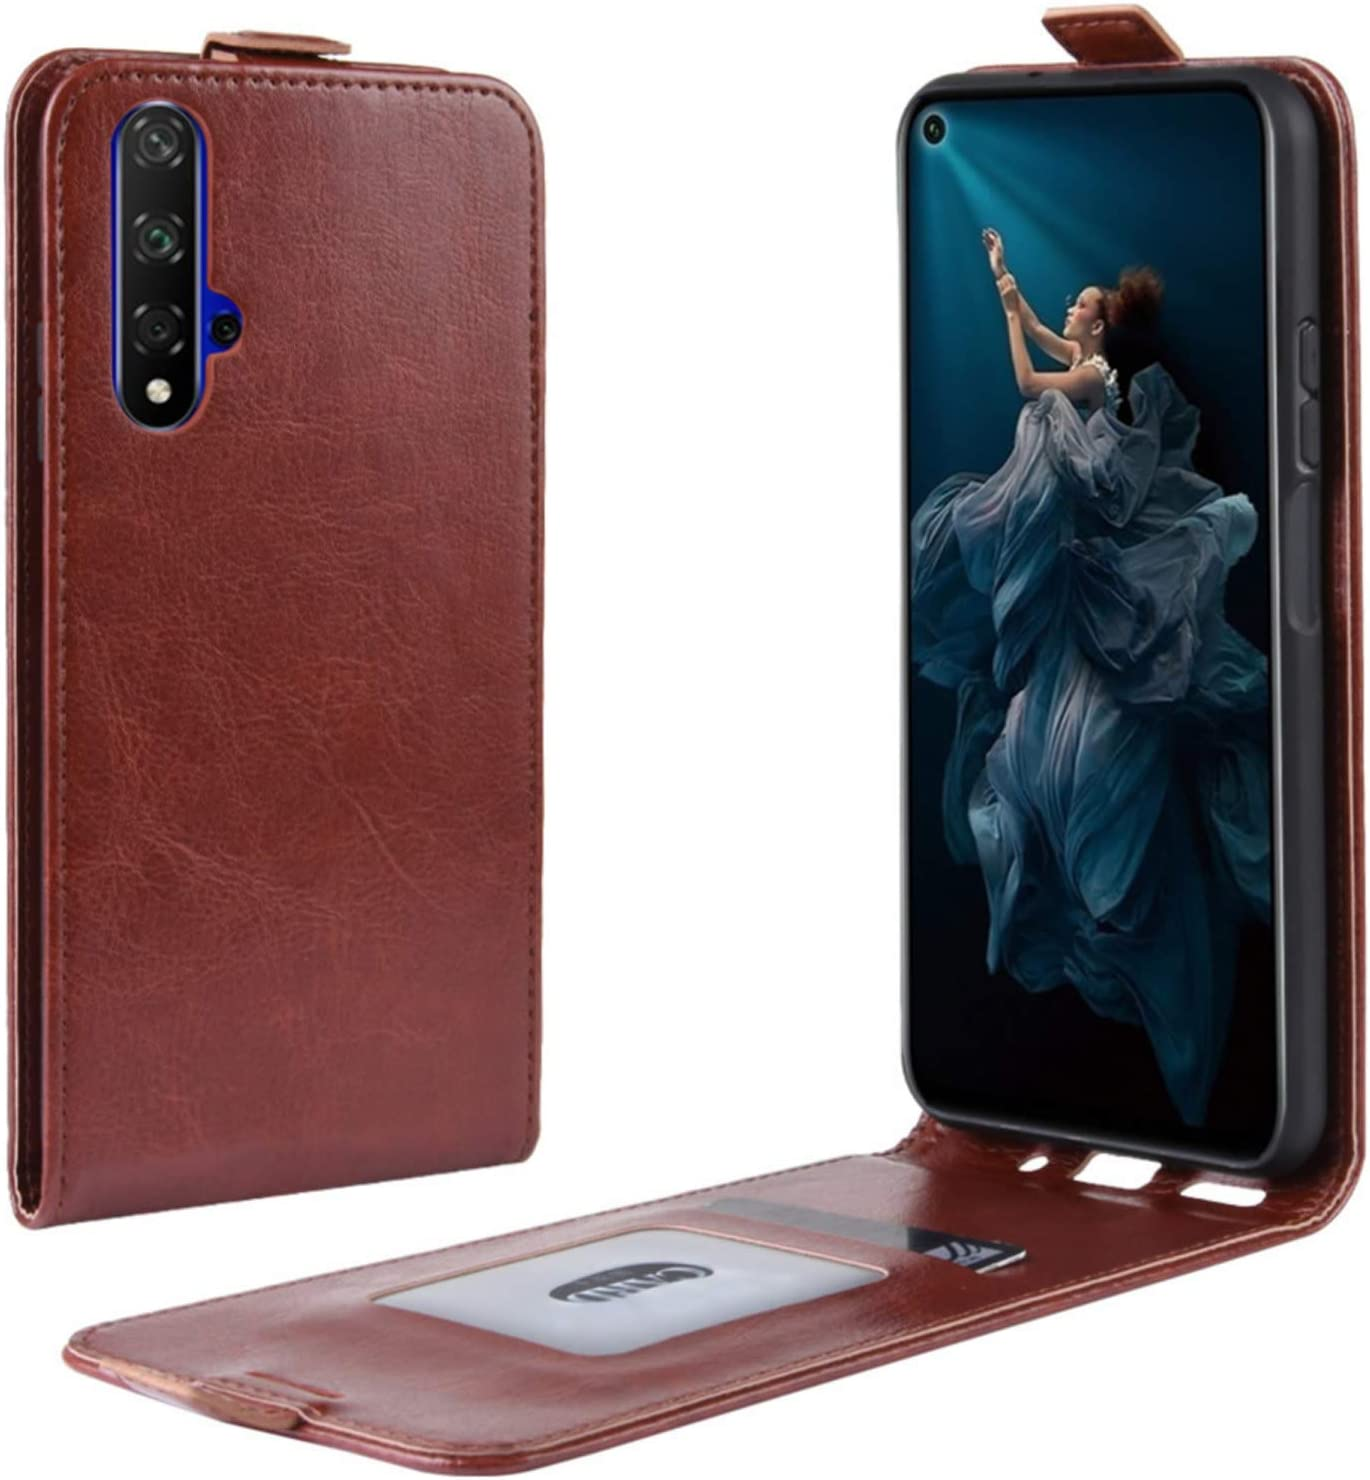 HualuBro Huawei Nova 5T Case, Premium PU Leather Wallet Flip Folio Shockproof Book Phone Case Cover with [Card Slots] [Magnetic Closure] for Huawei Nova 5T 2019 (Brown)